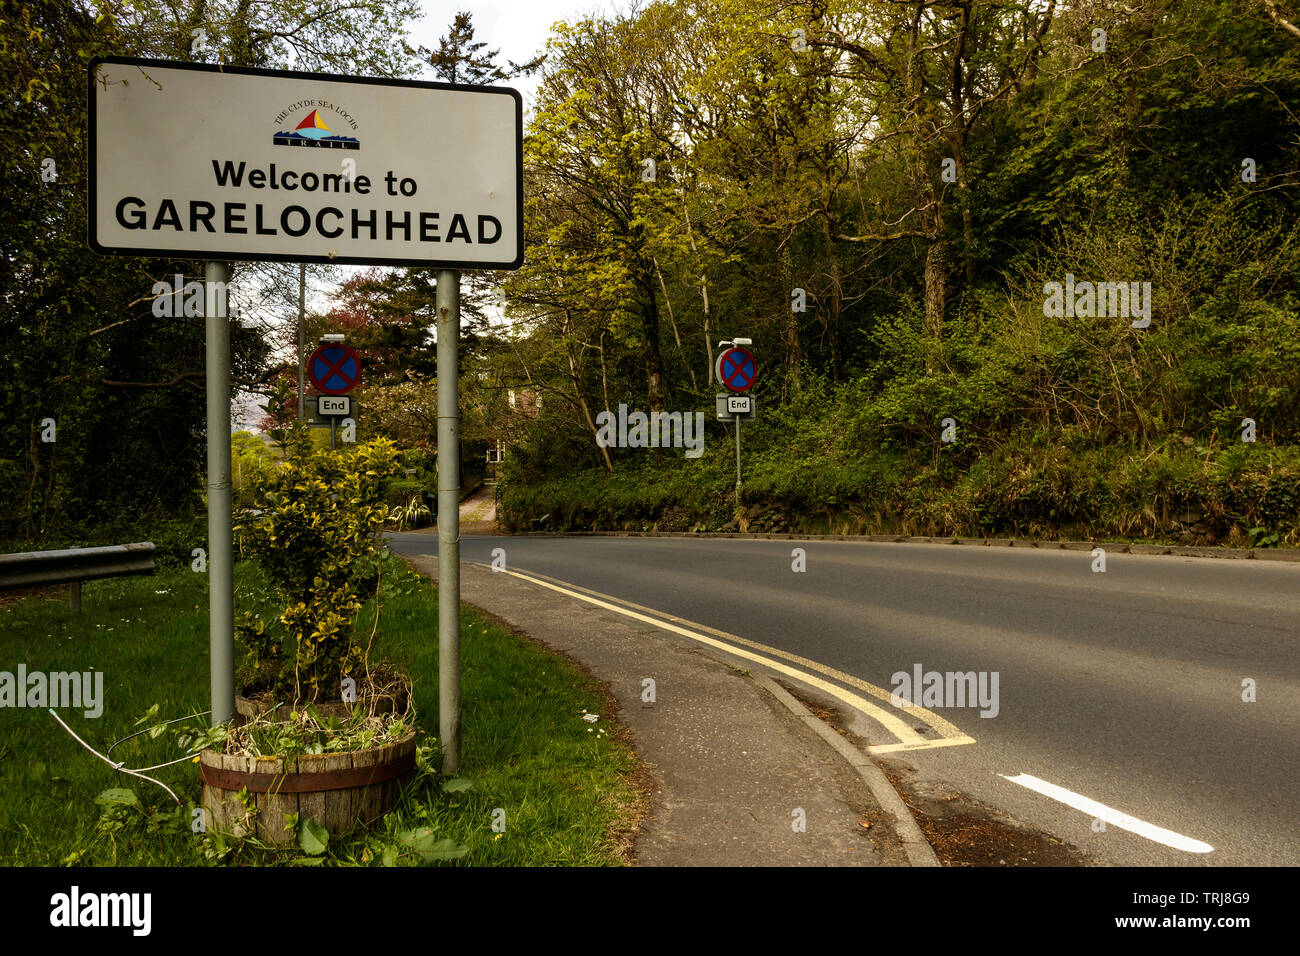 The Village of Garelochhead Welcome - Stock Image